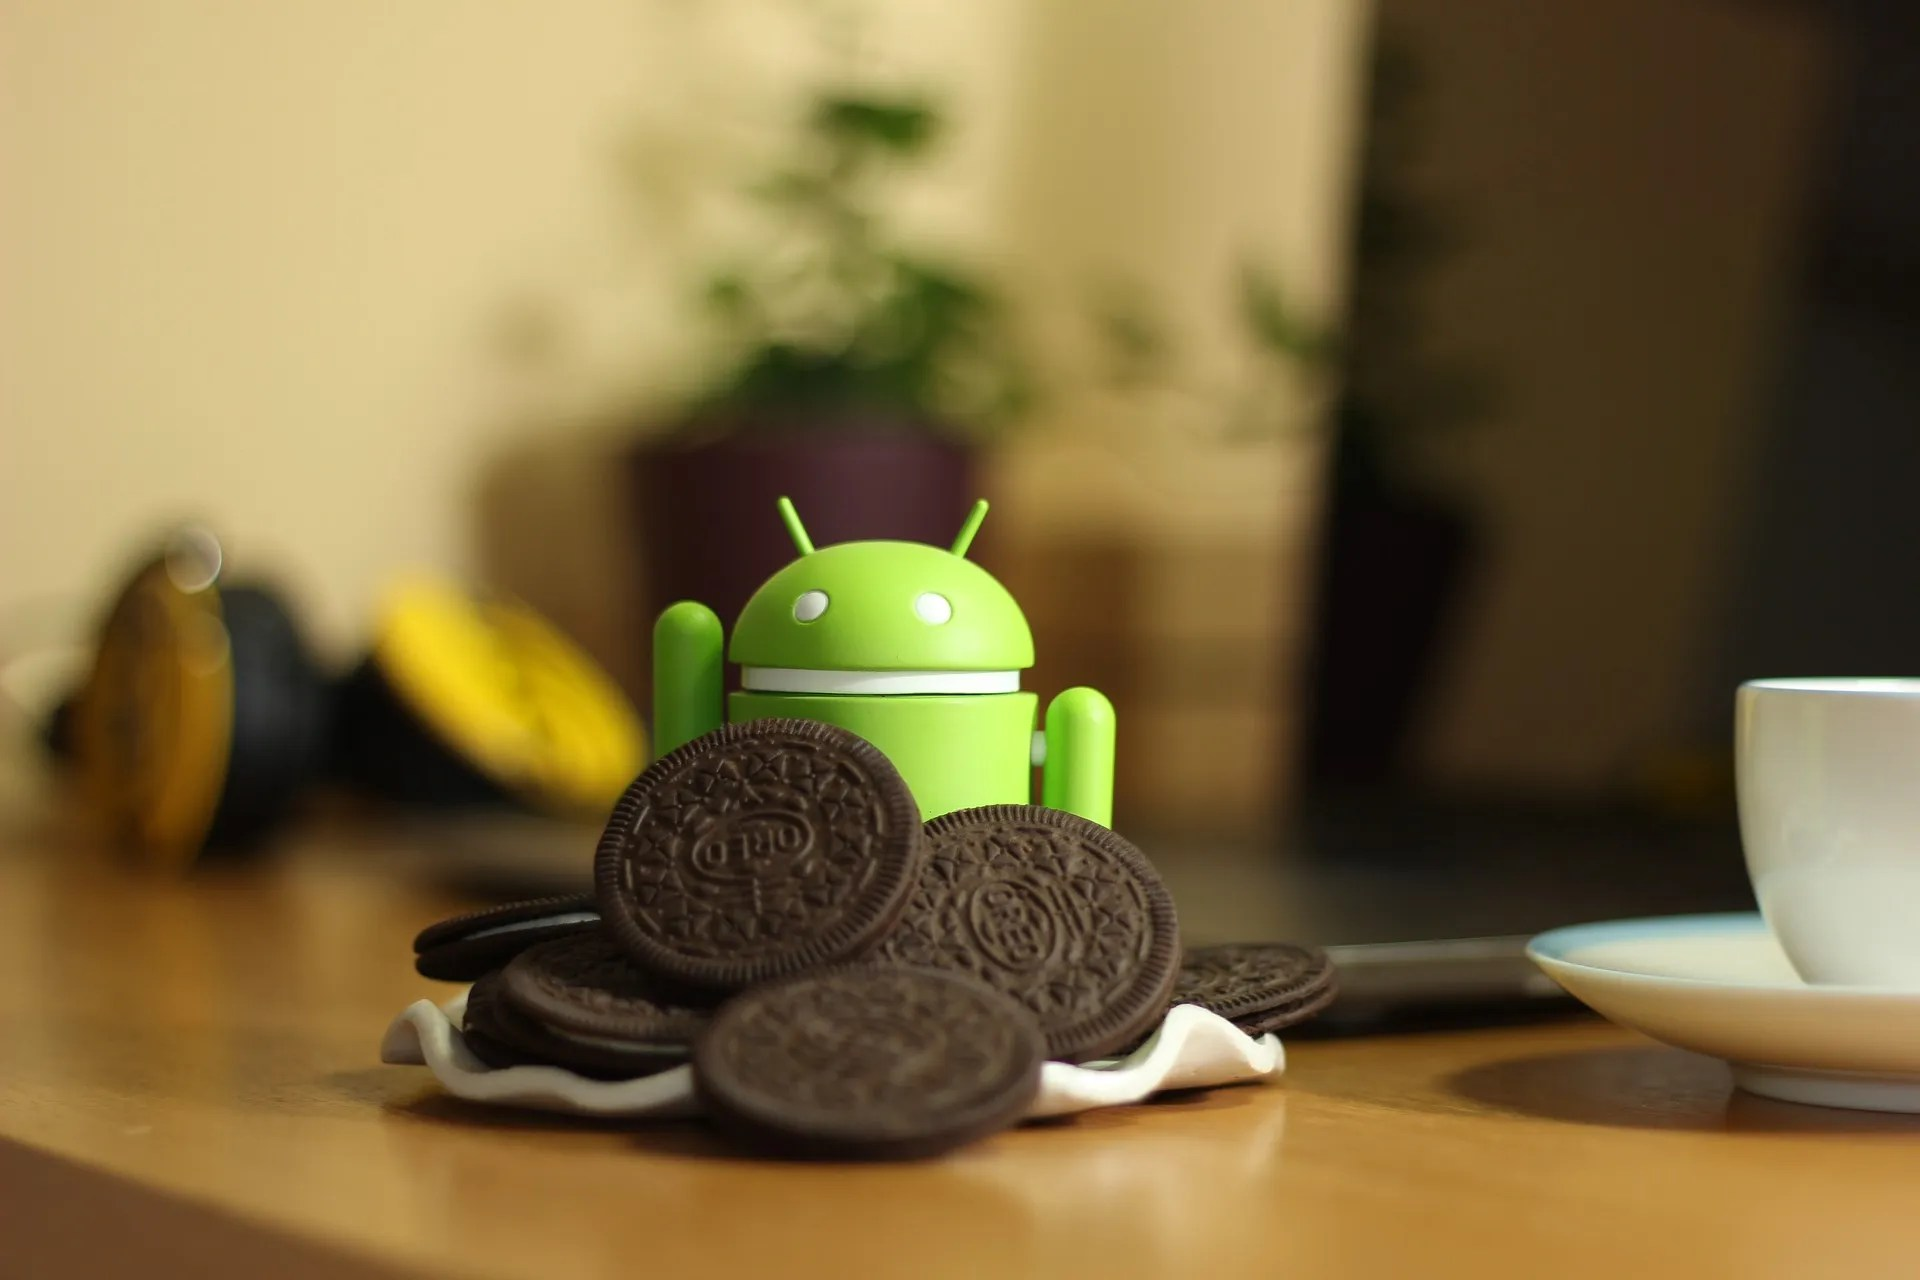 Tizi: New Android Spyware Discovered by Google